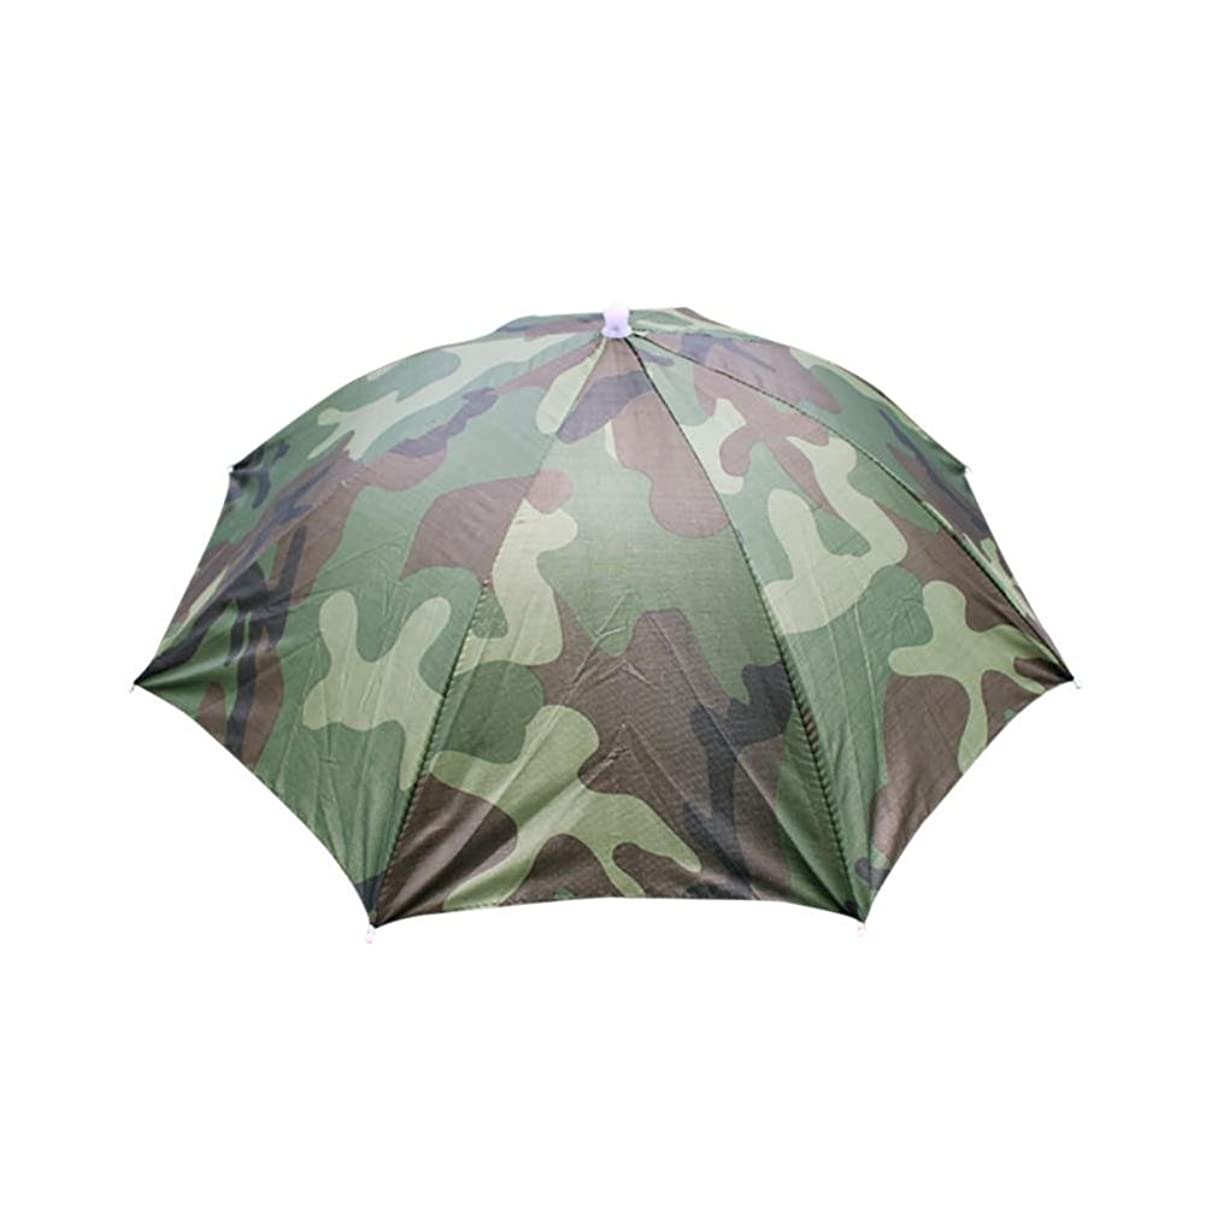 Boomboom Baseball Caps, Foldable Novelty Umbrella Sun Hats Fancy Dress Multicolor Hats for Golf Fishing Camping Hiking